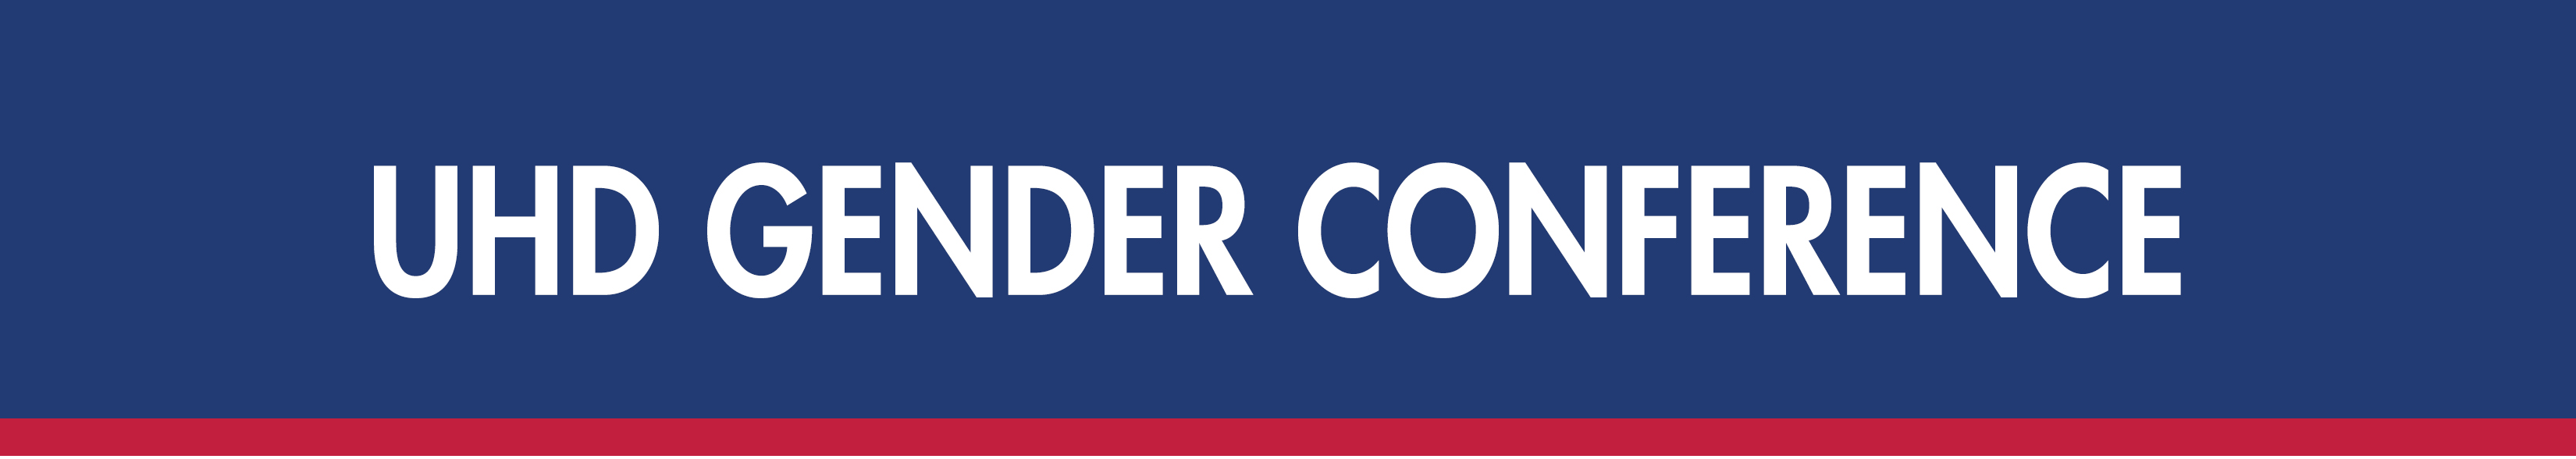 UHD Gender Conference header image